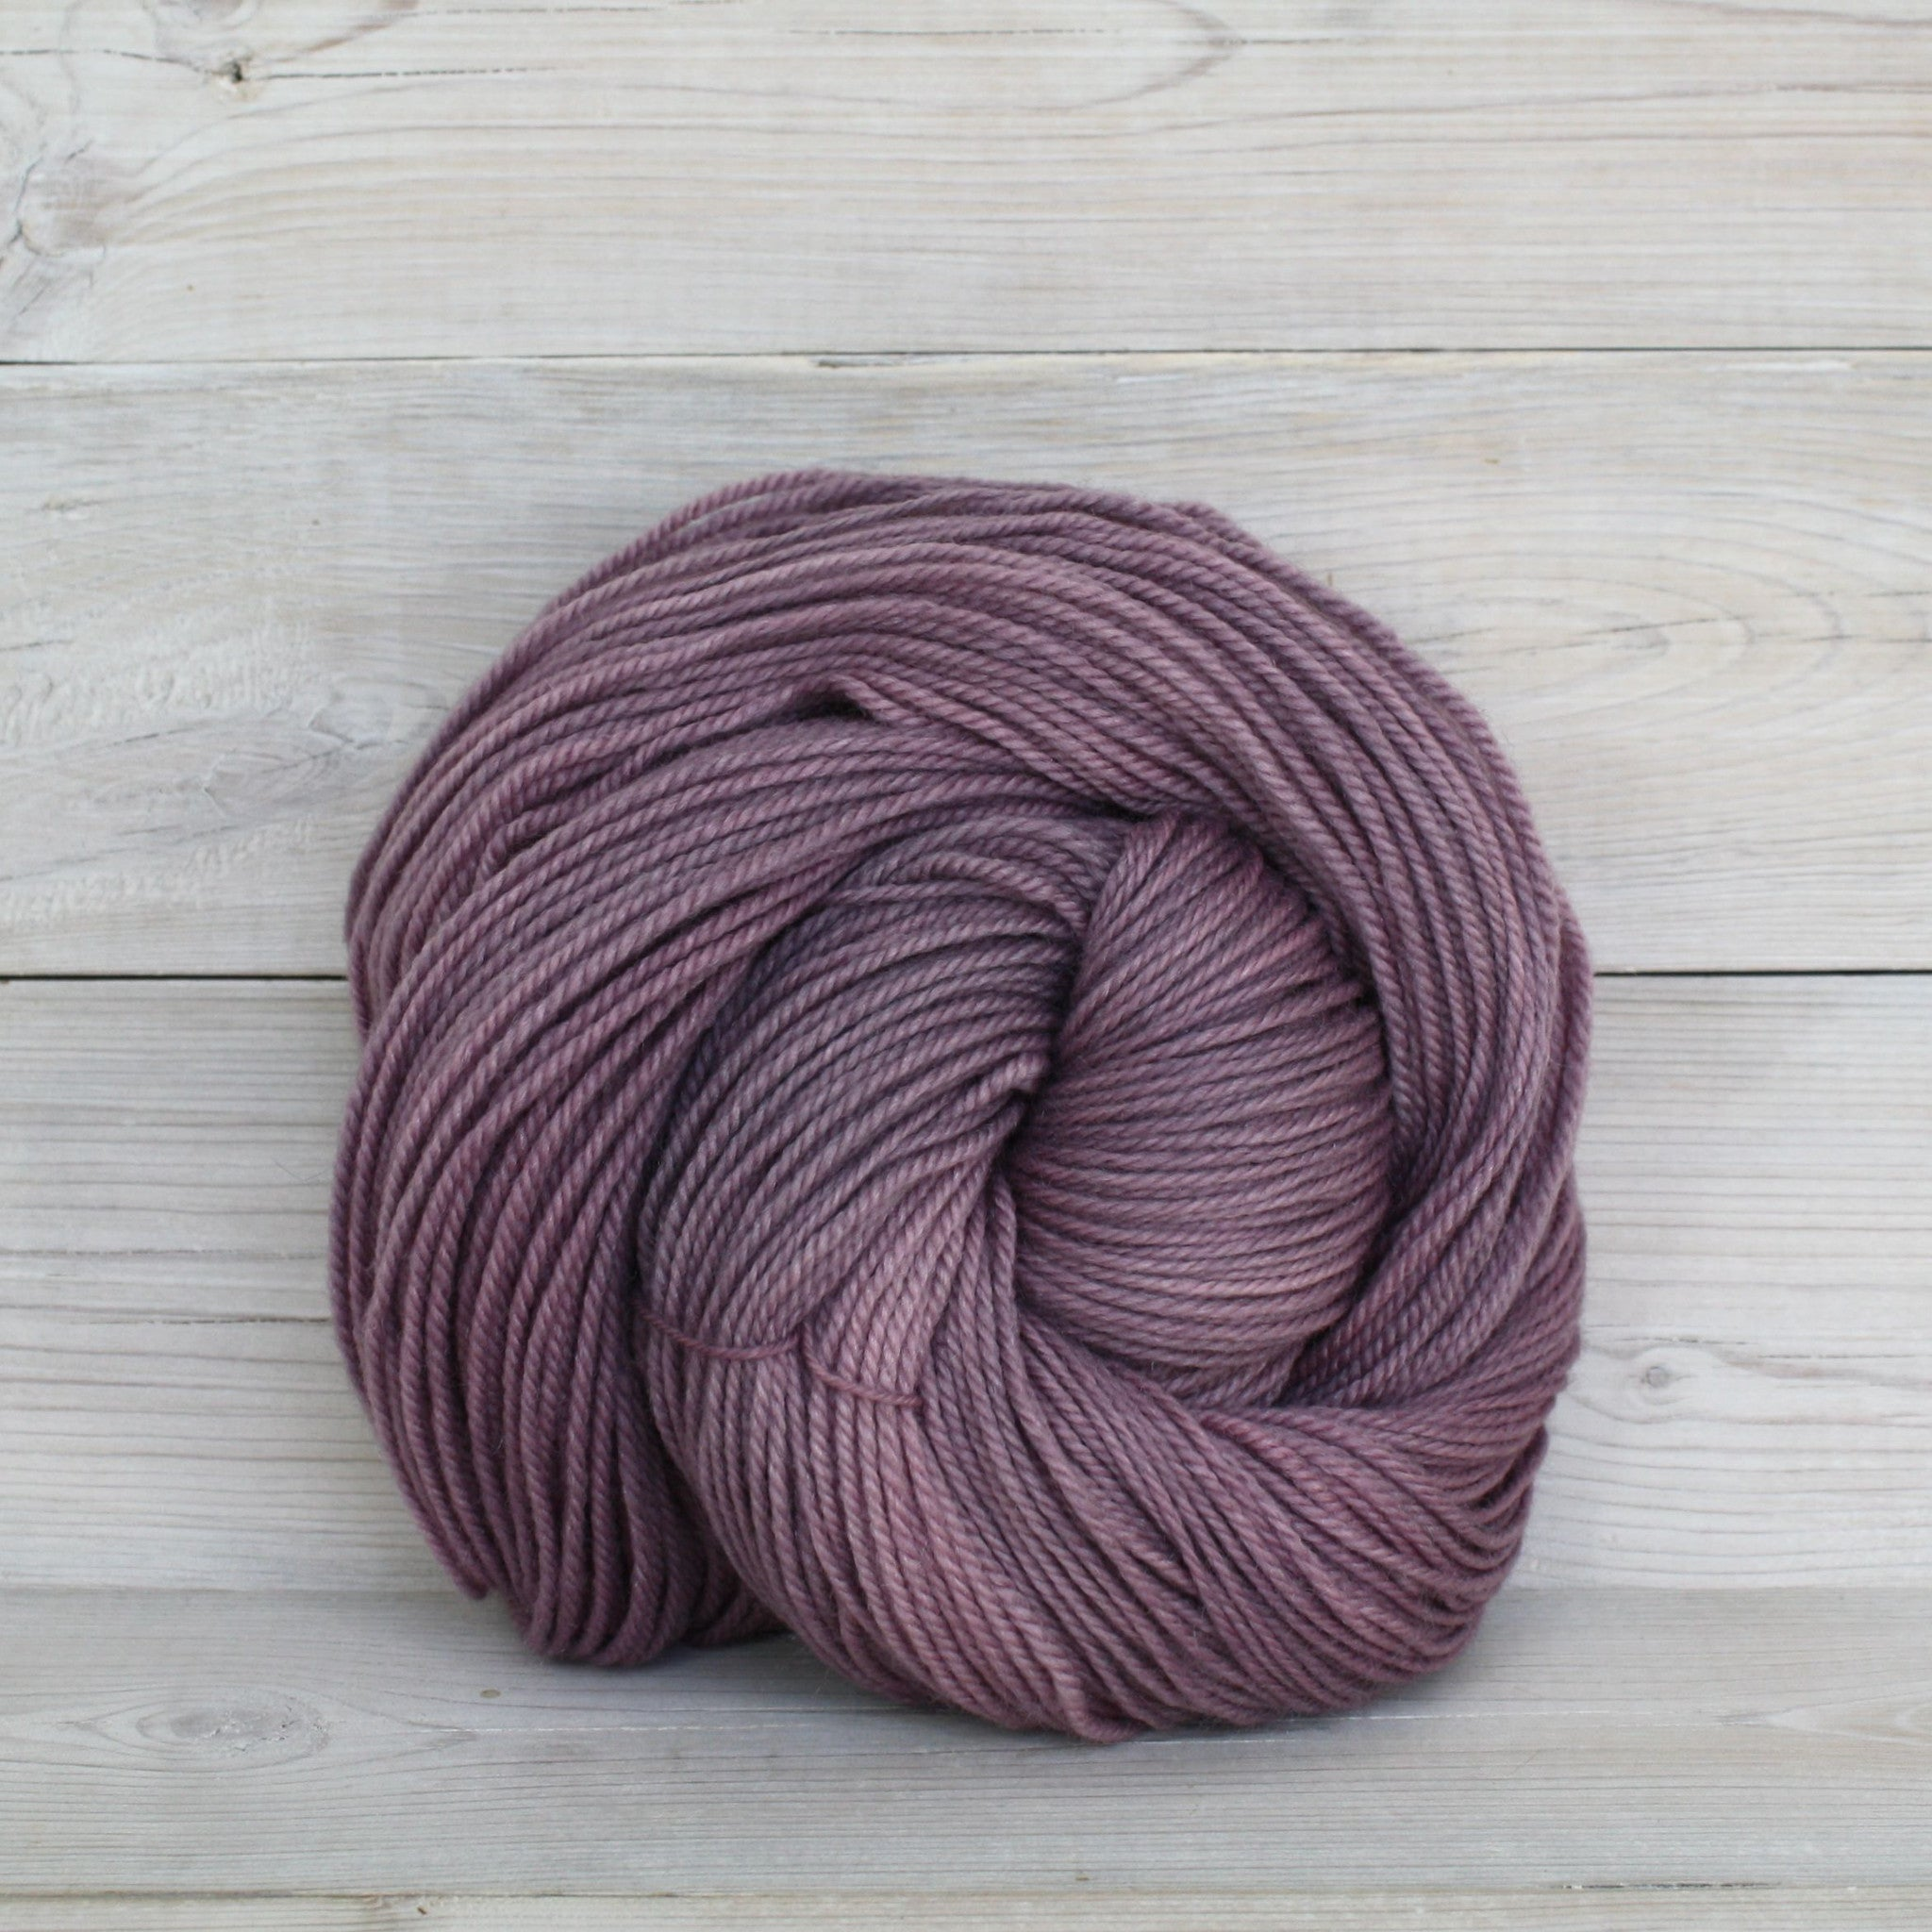 Luna Grey Fiber Arts Zeta Yarn | Colorway: Sanctuary